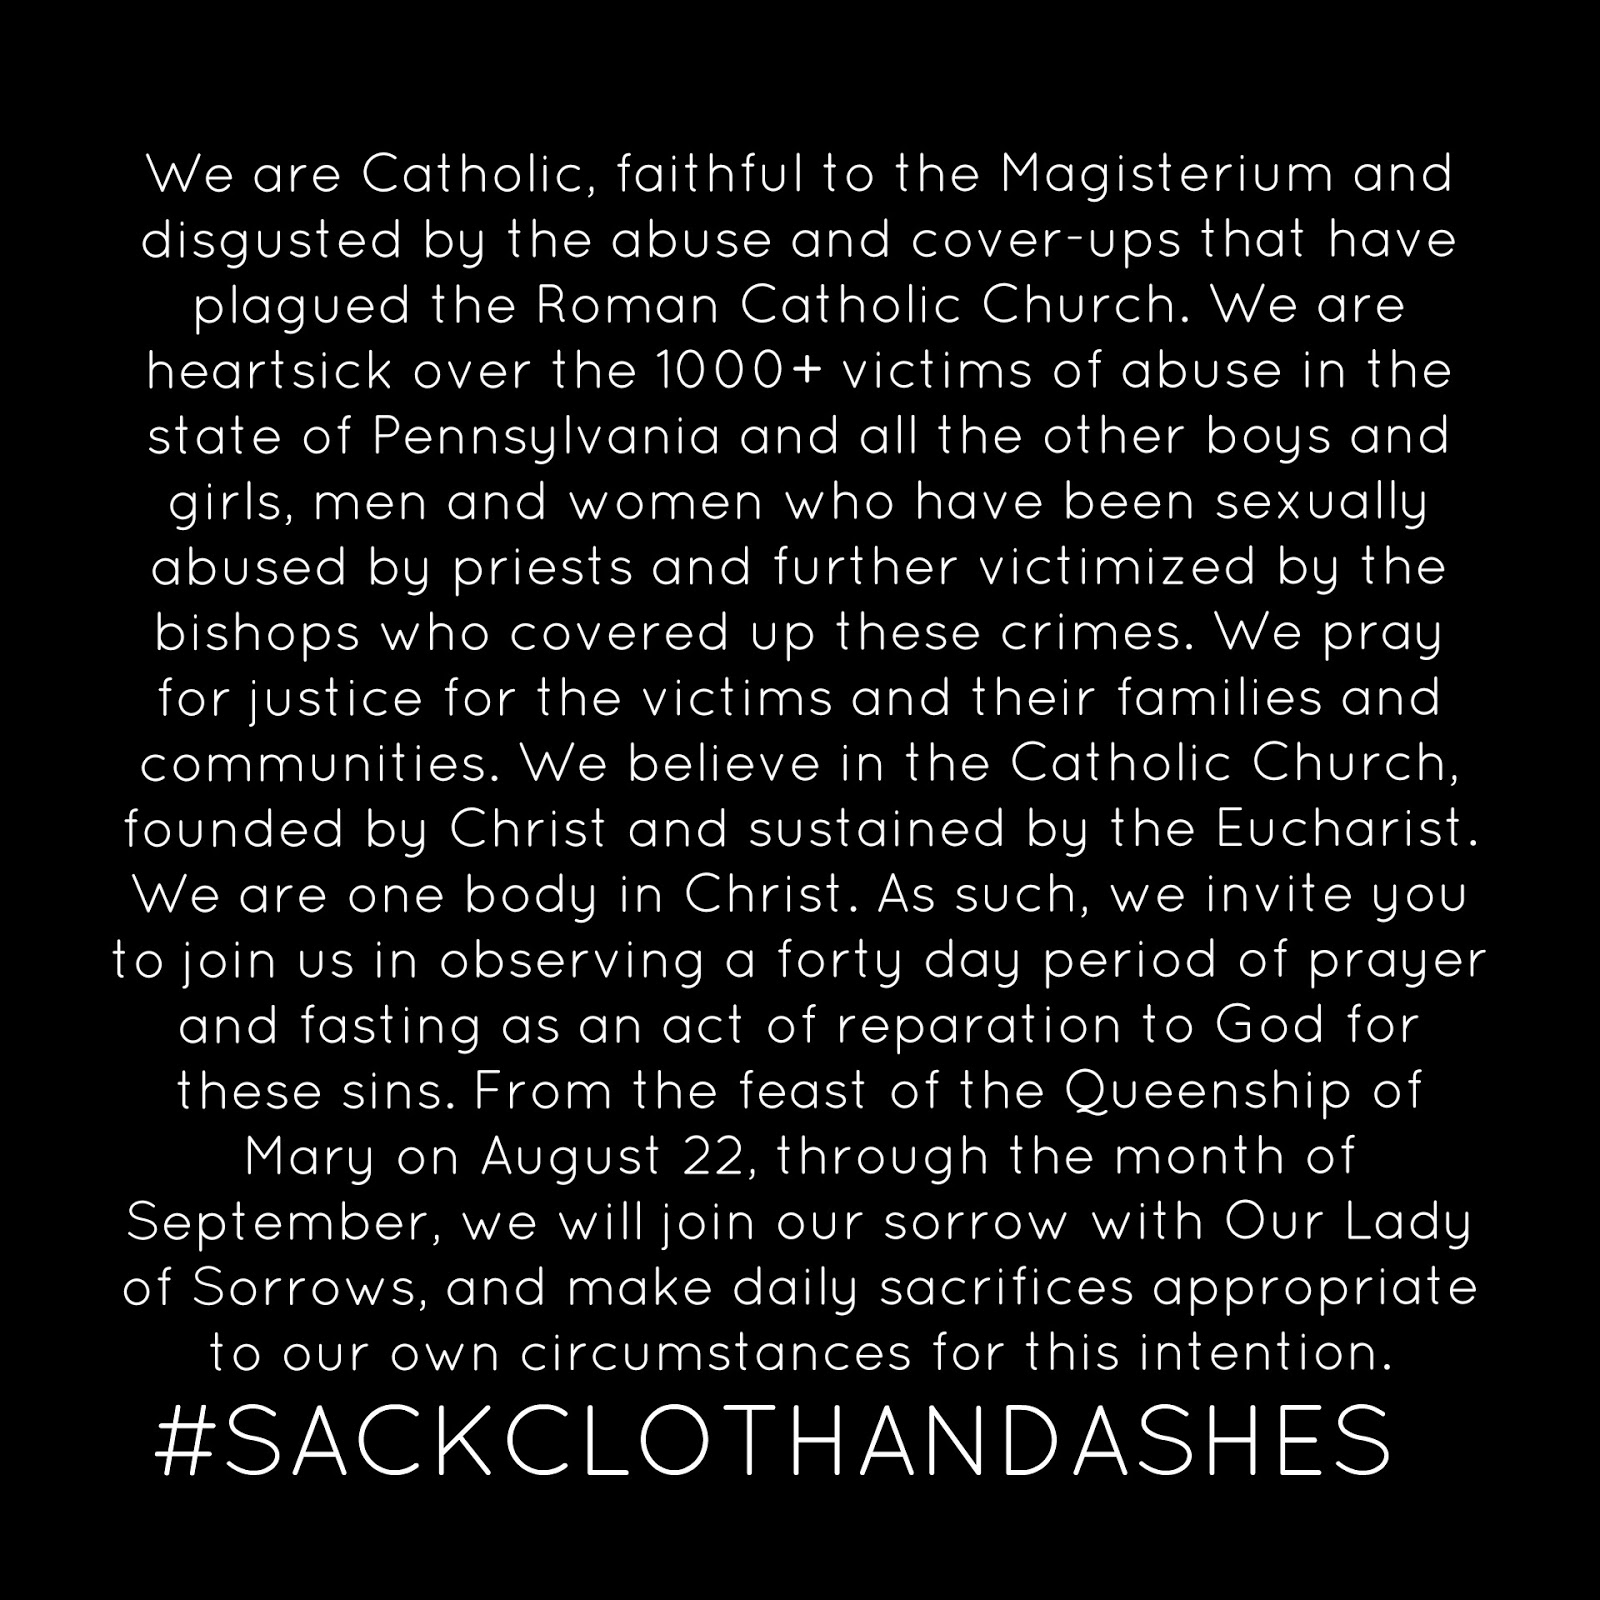 Sexual Abuse, Sackcloth, and Ashes: Meeting Scandal with